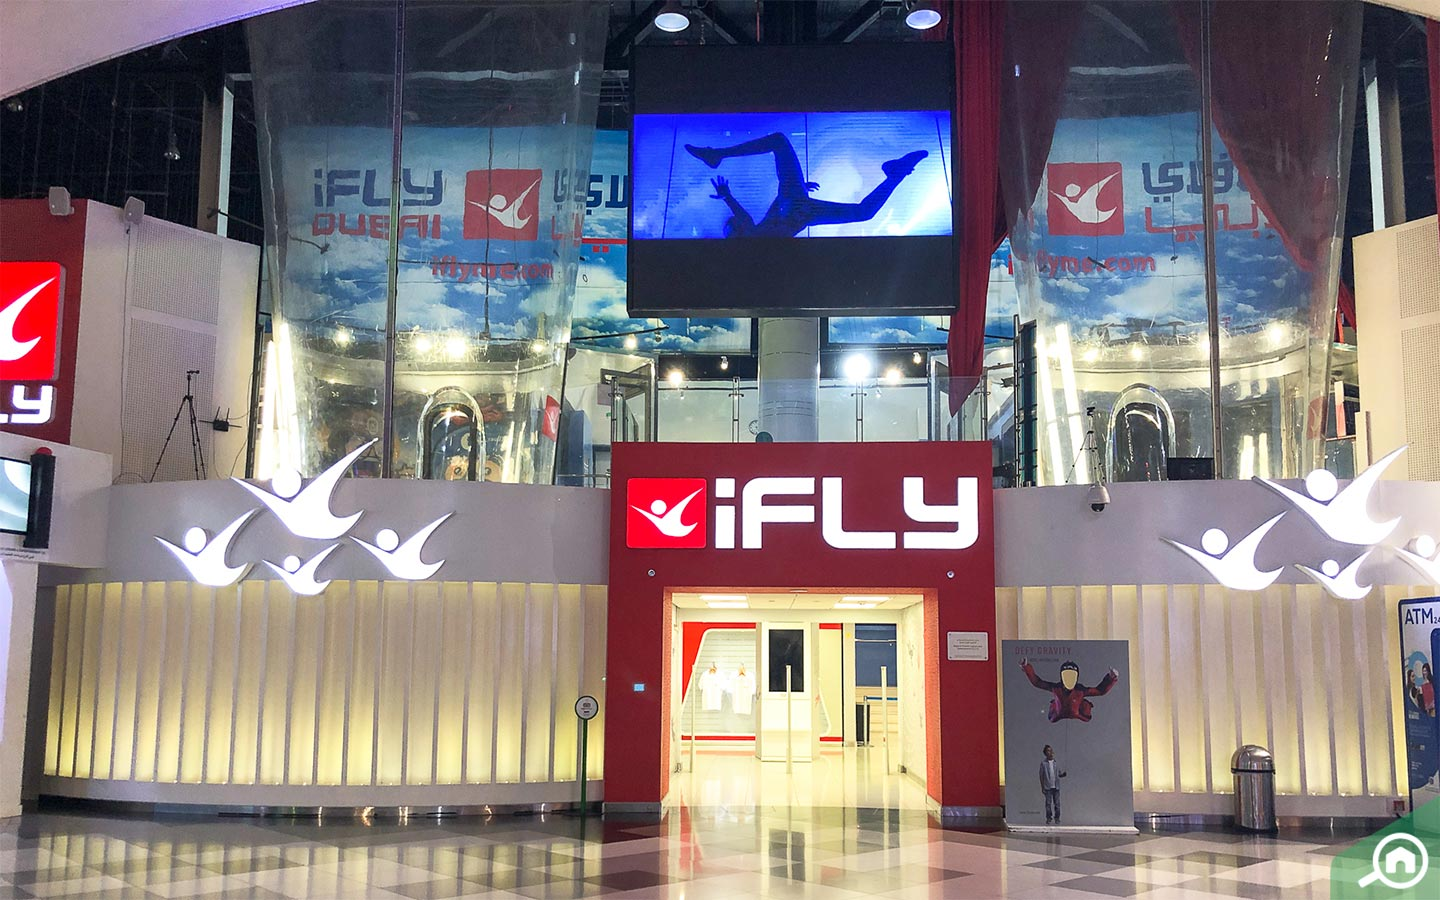 You can enjoy the thrill of skydiving at City Centre Mirdif.